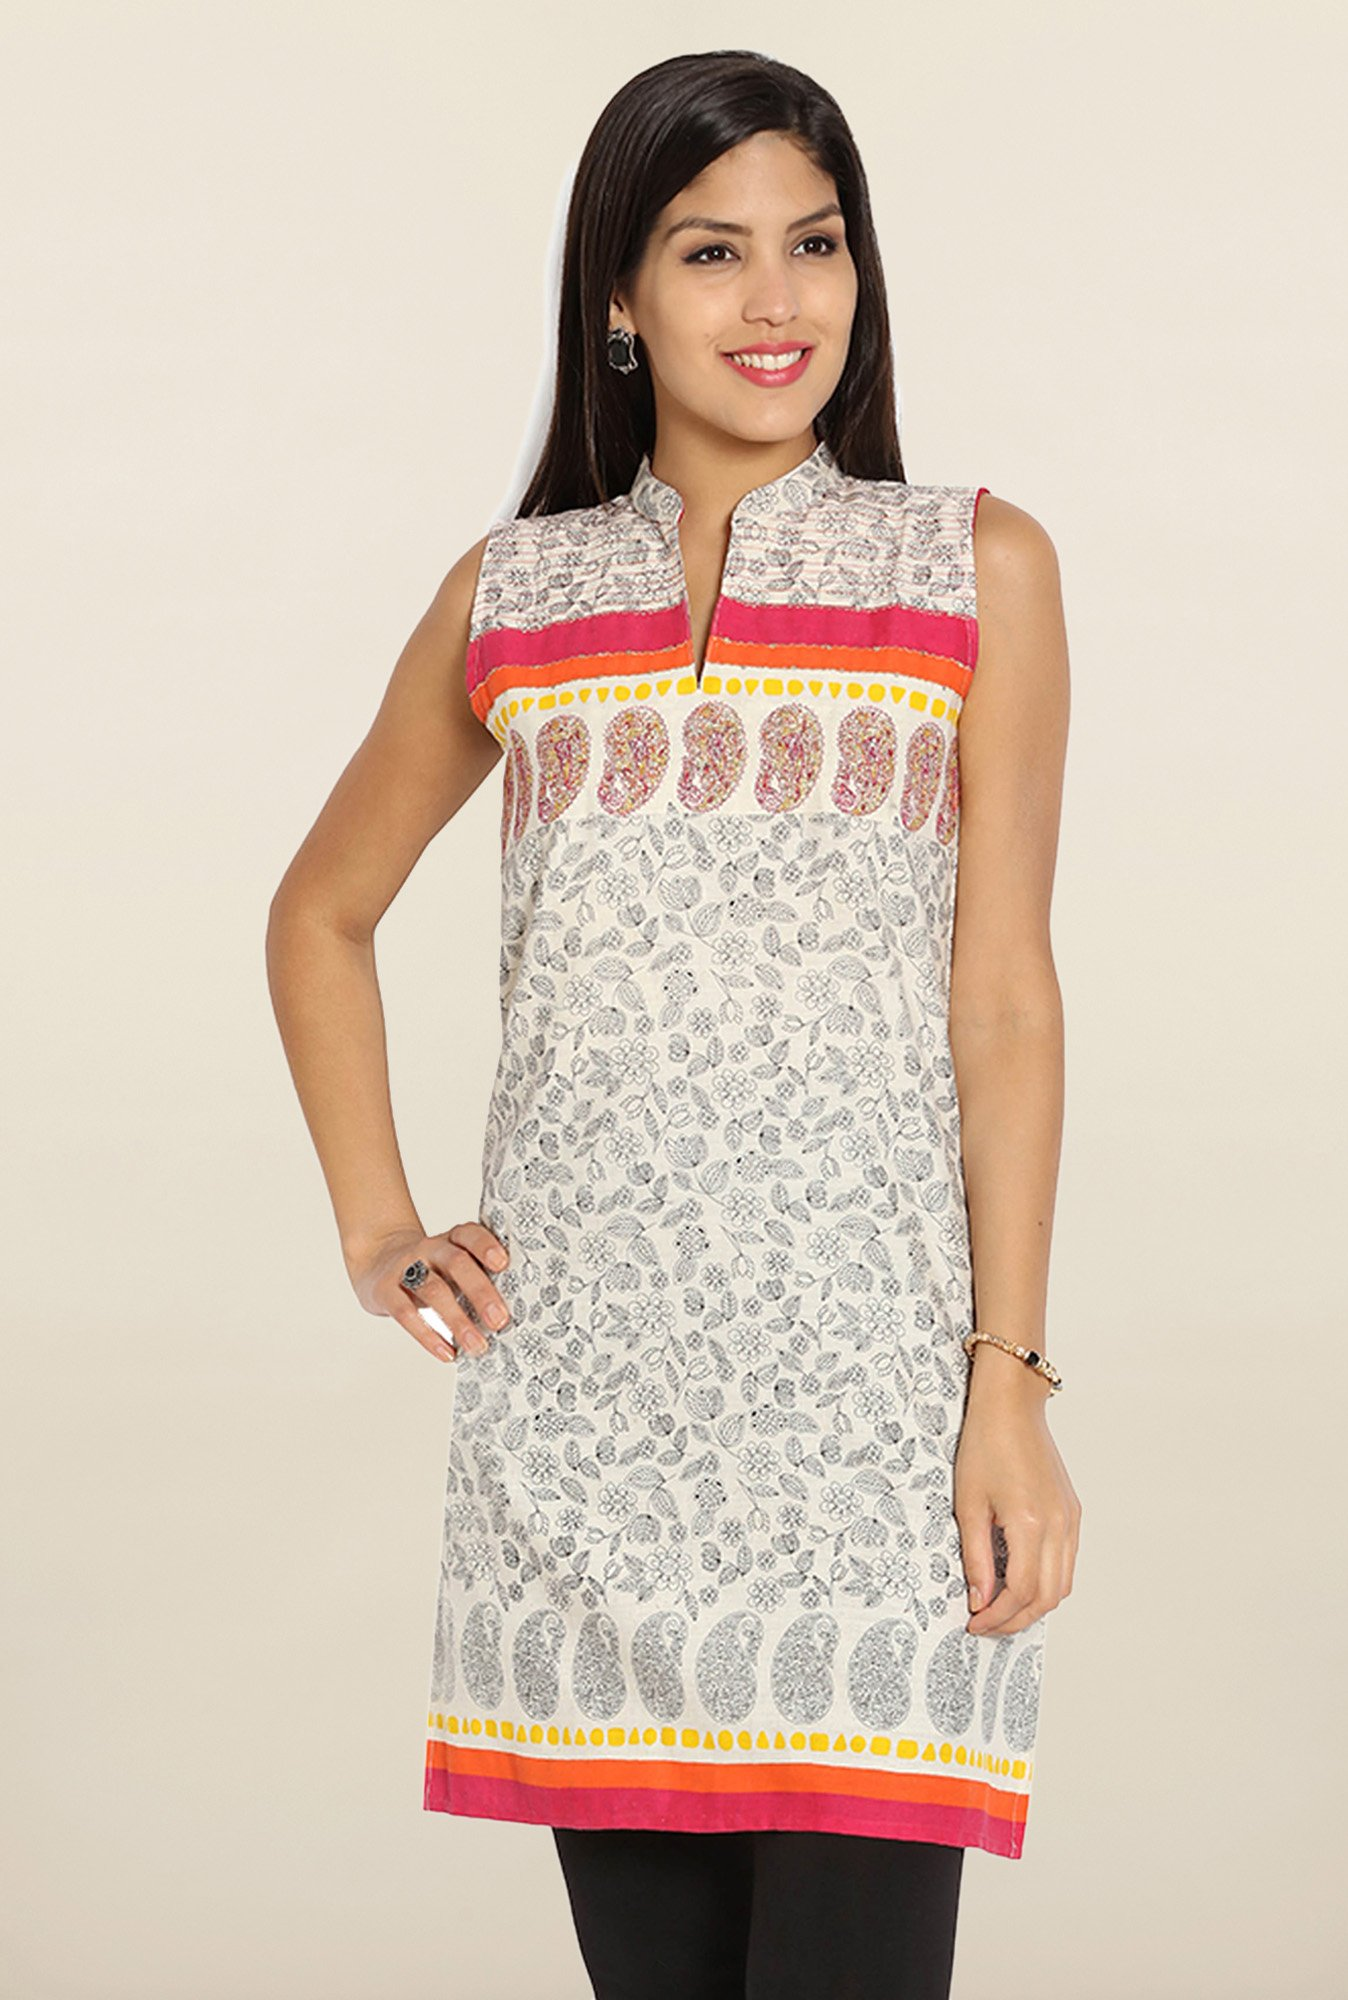 Soch Cream & Black Printed Cotton Kurti